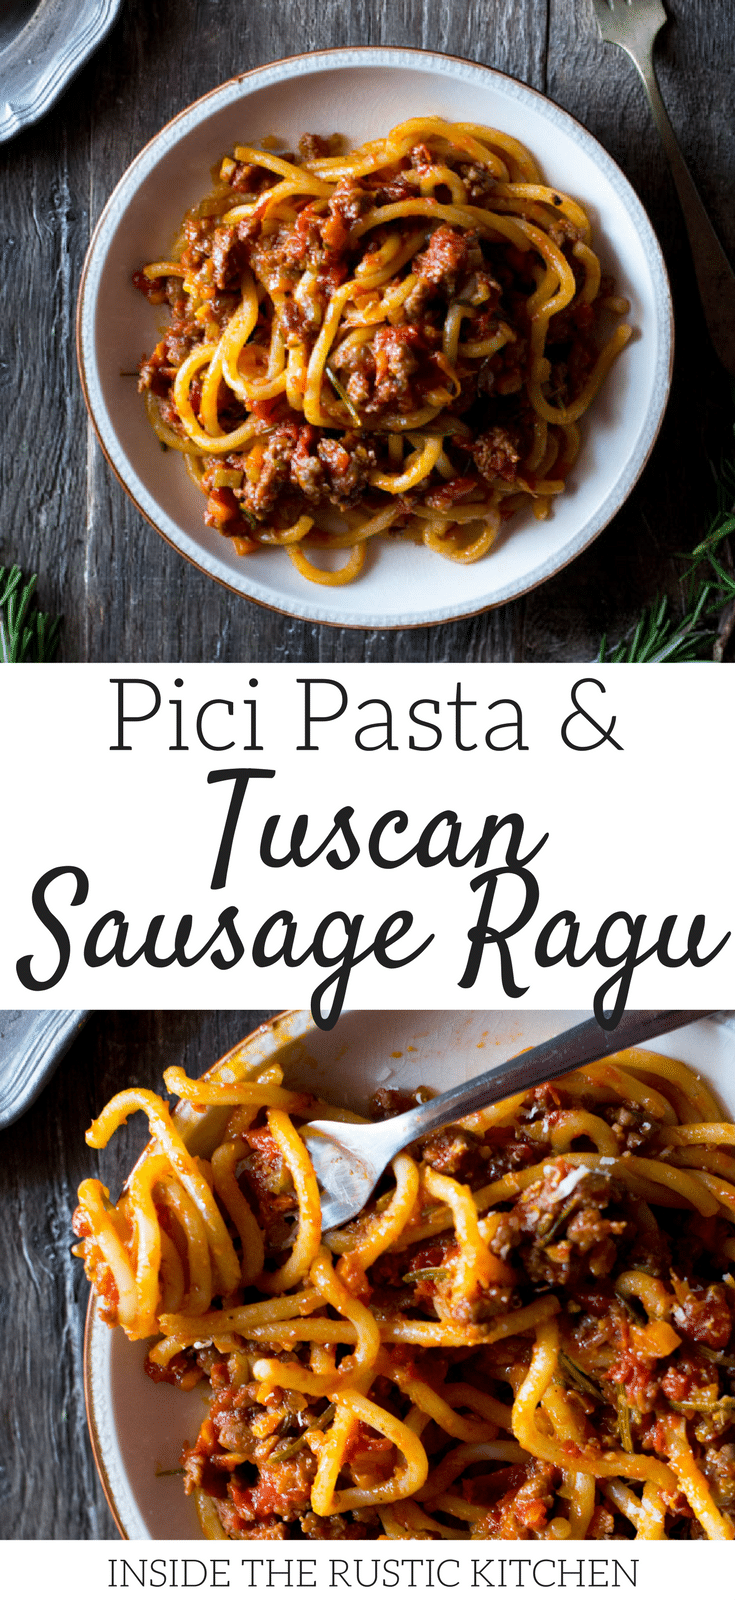 A flavour packed Tuscan sausage ragu made with the best Italian sausages, fennel seeds, red wine and garlic. An easy Italian ragu recipe perfect to make ahead for a weeknight meal or for weekends. Find more Italian pasta recipes and authentic Italian recipes at Inside the rustic kitchen.